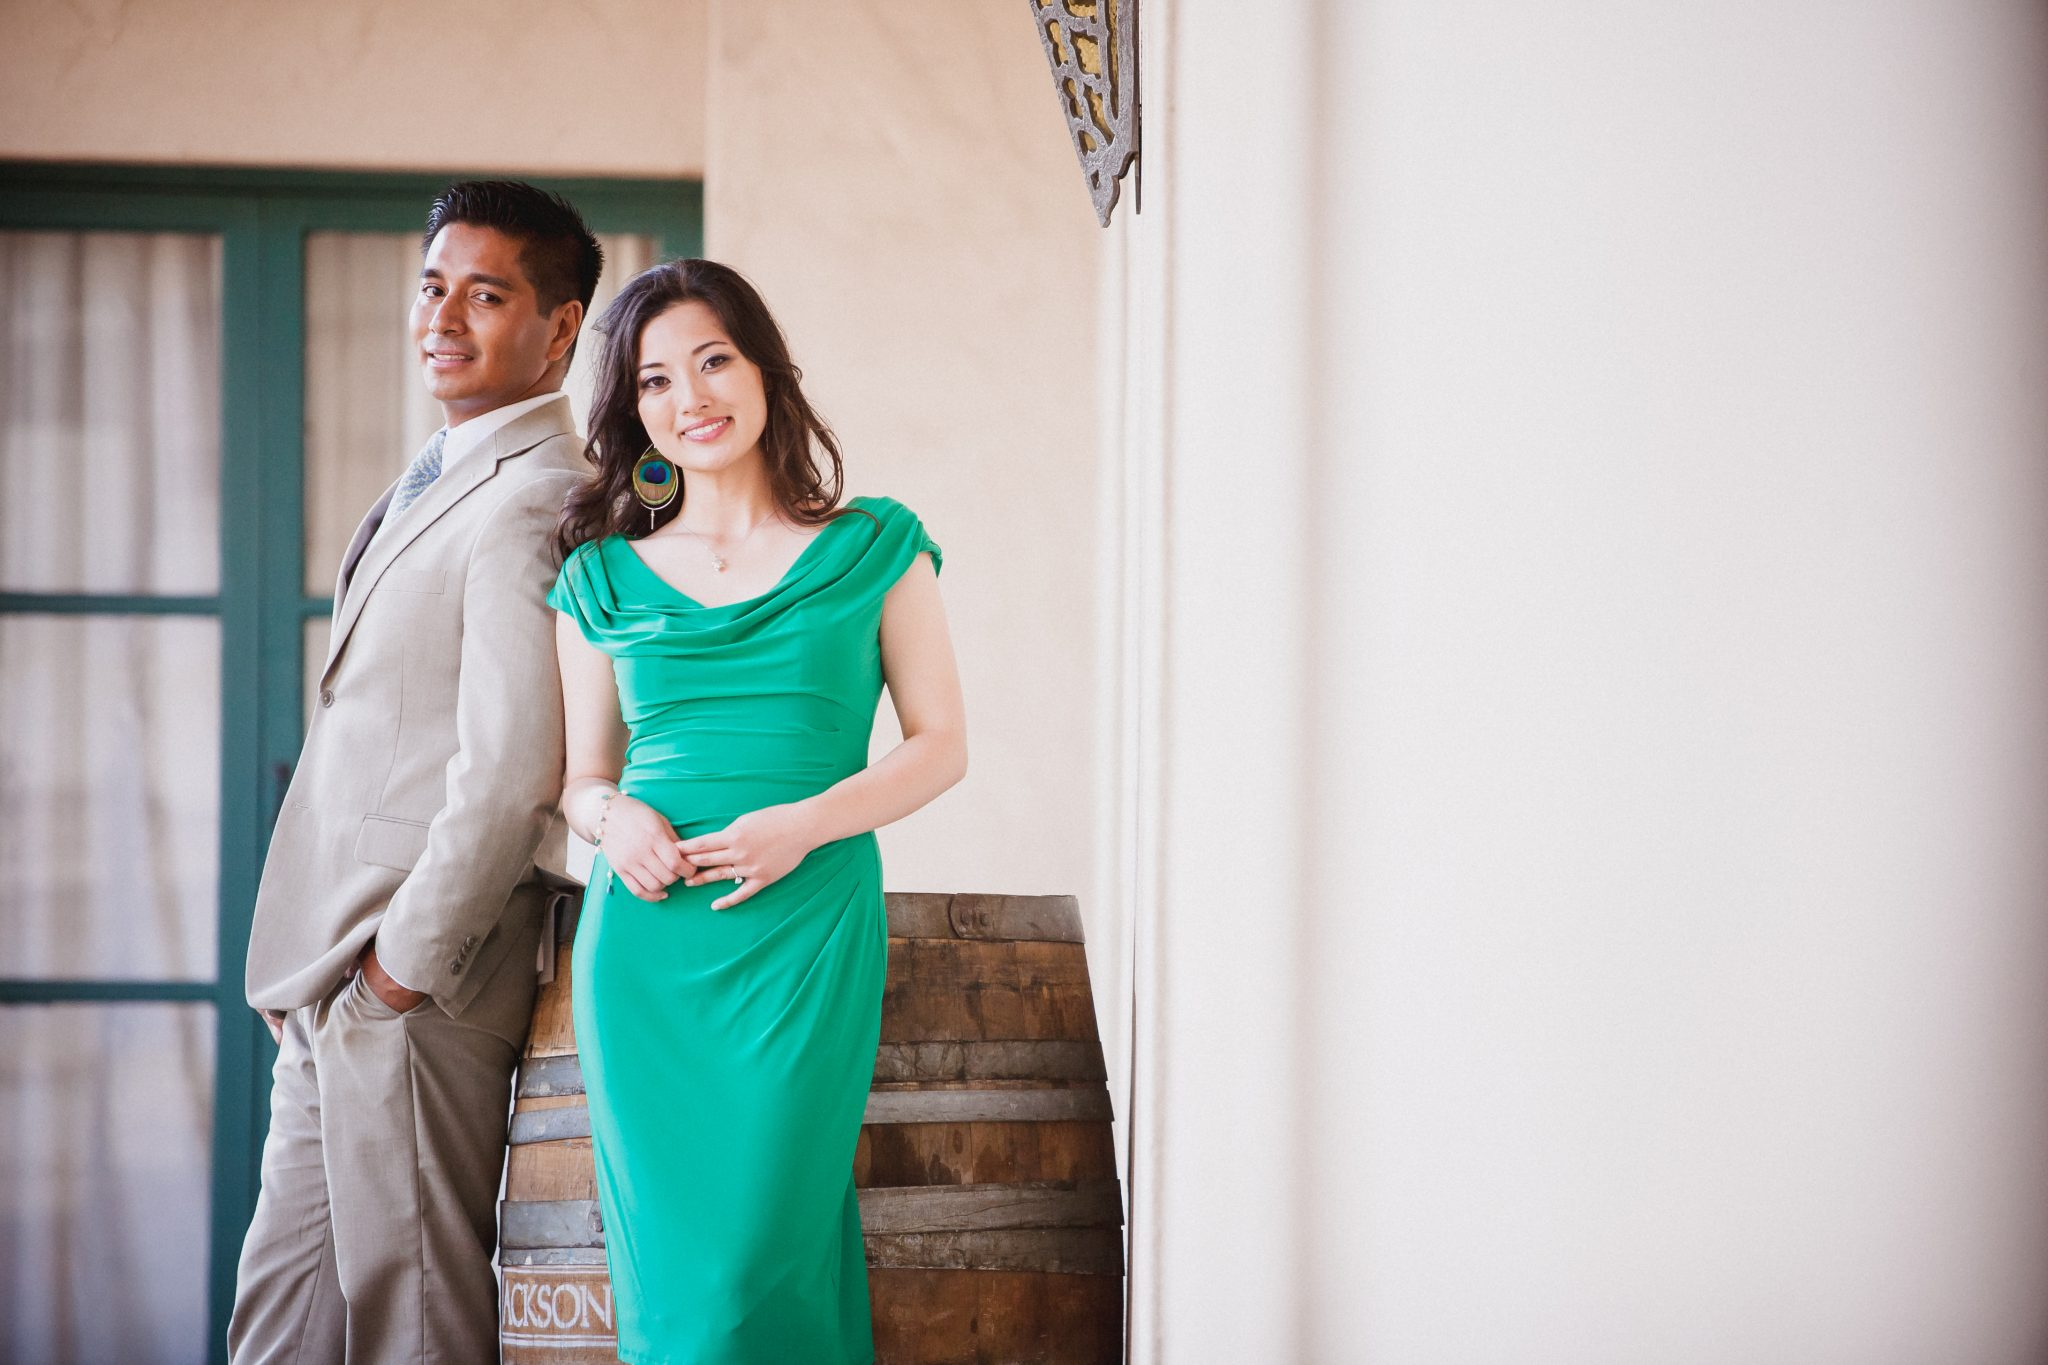 Woman in flattering dress and man in tan suit for engagement session